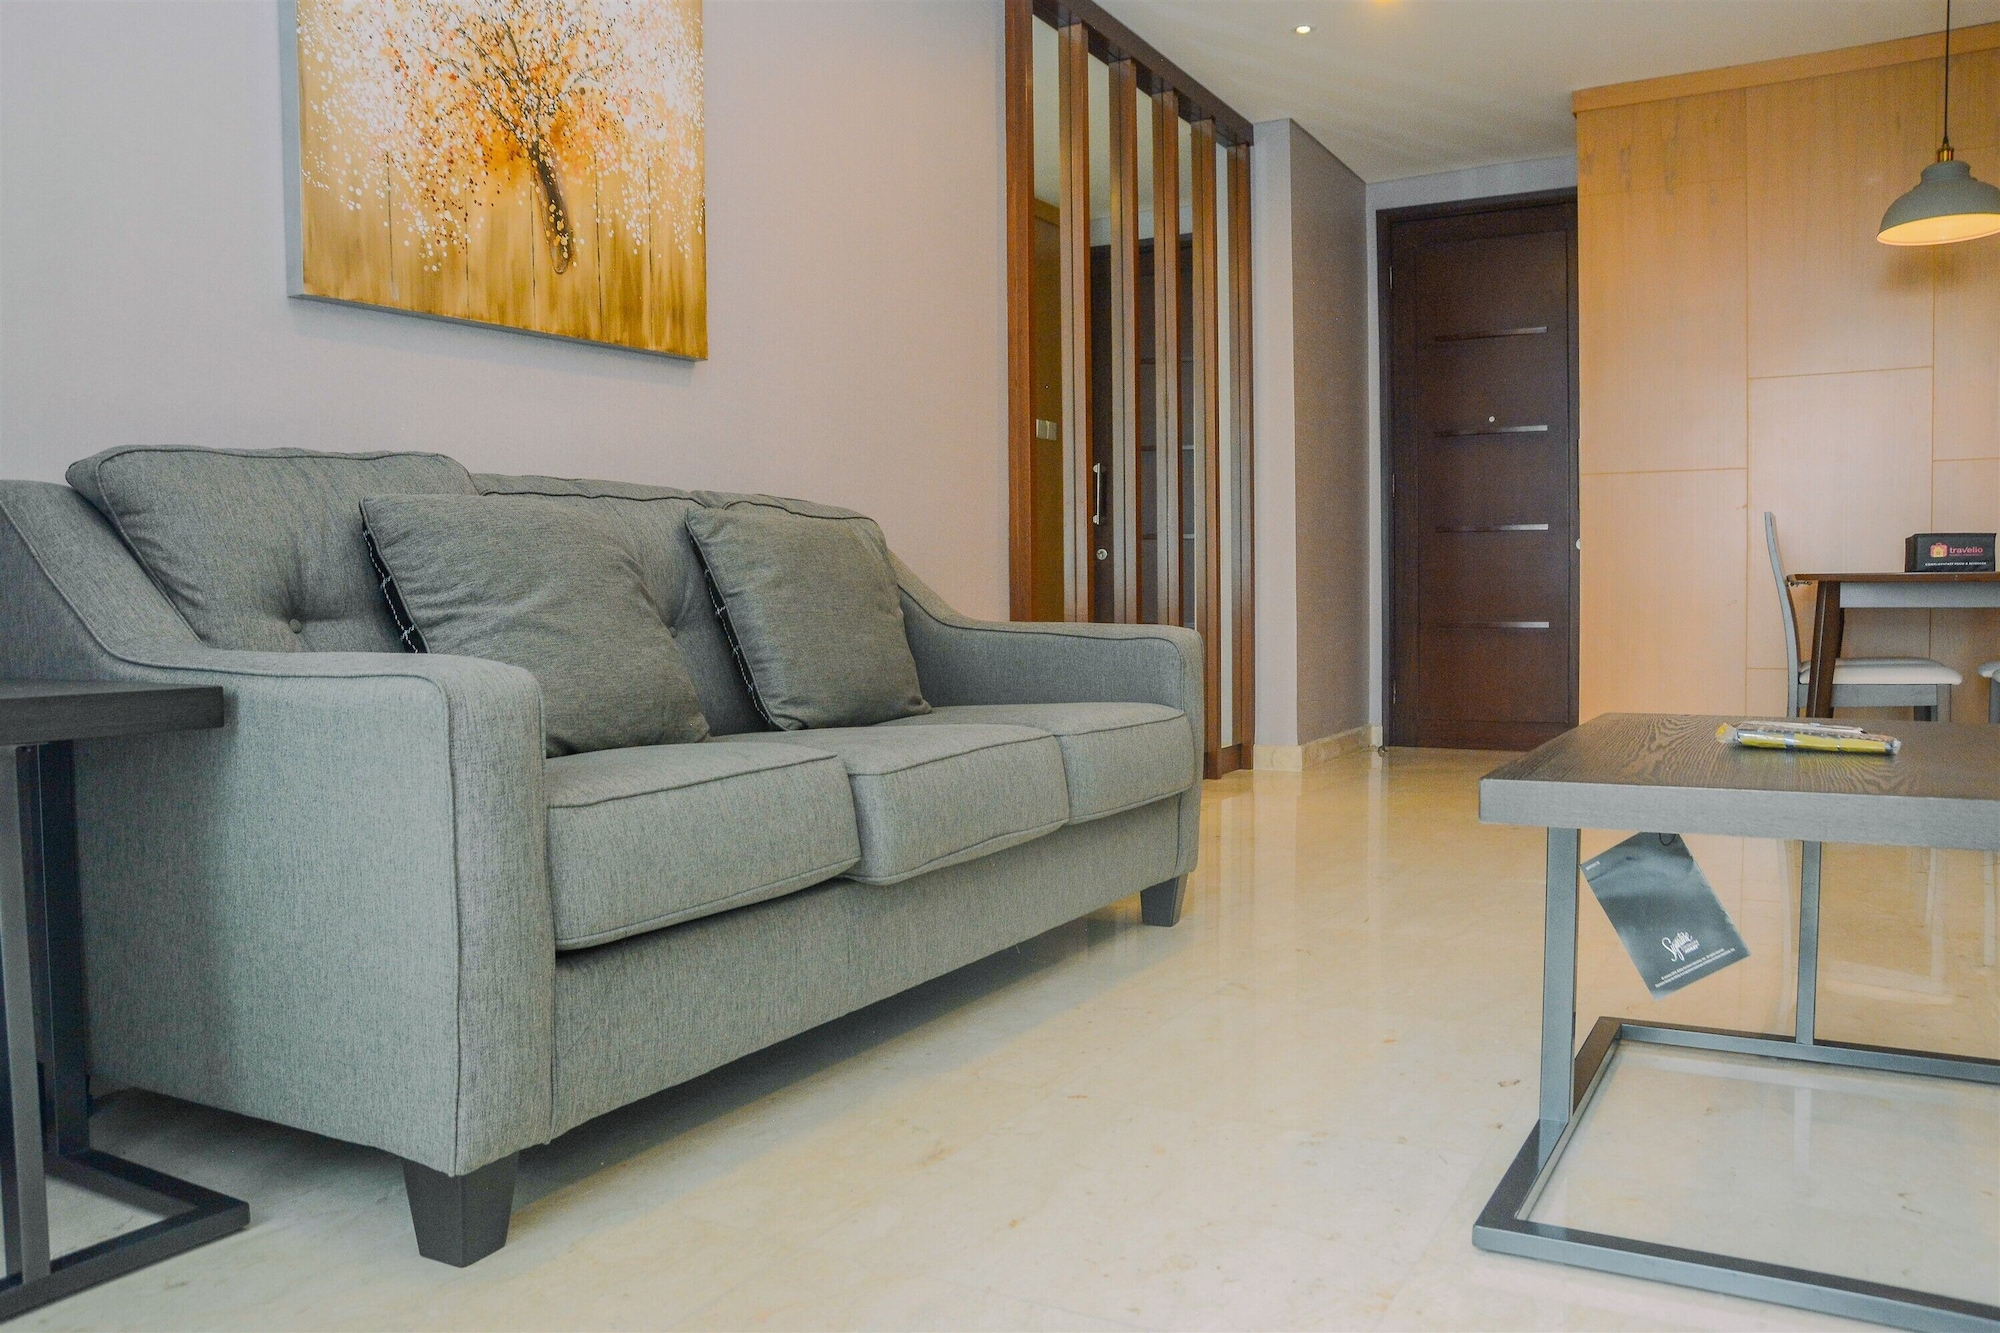 Prime Location and Luxury 2BR The Empyreal Apartment, Jakarta Selatan